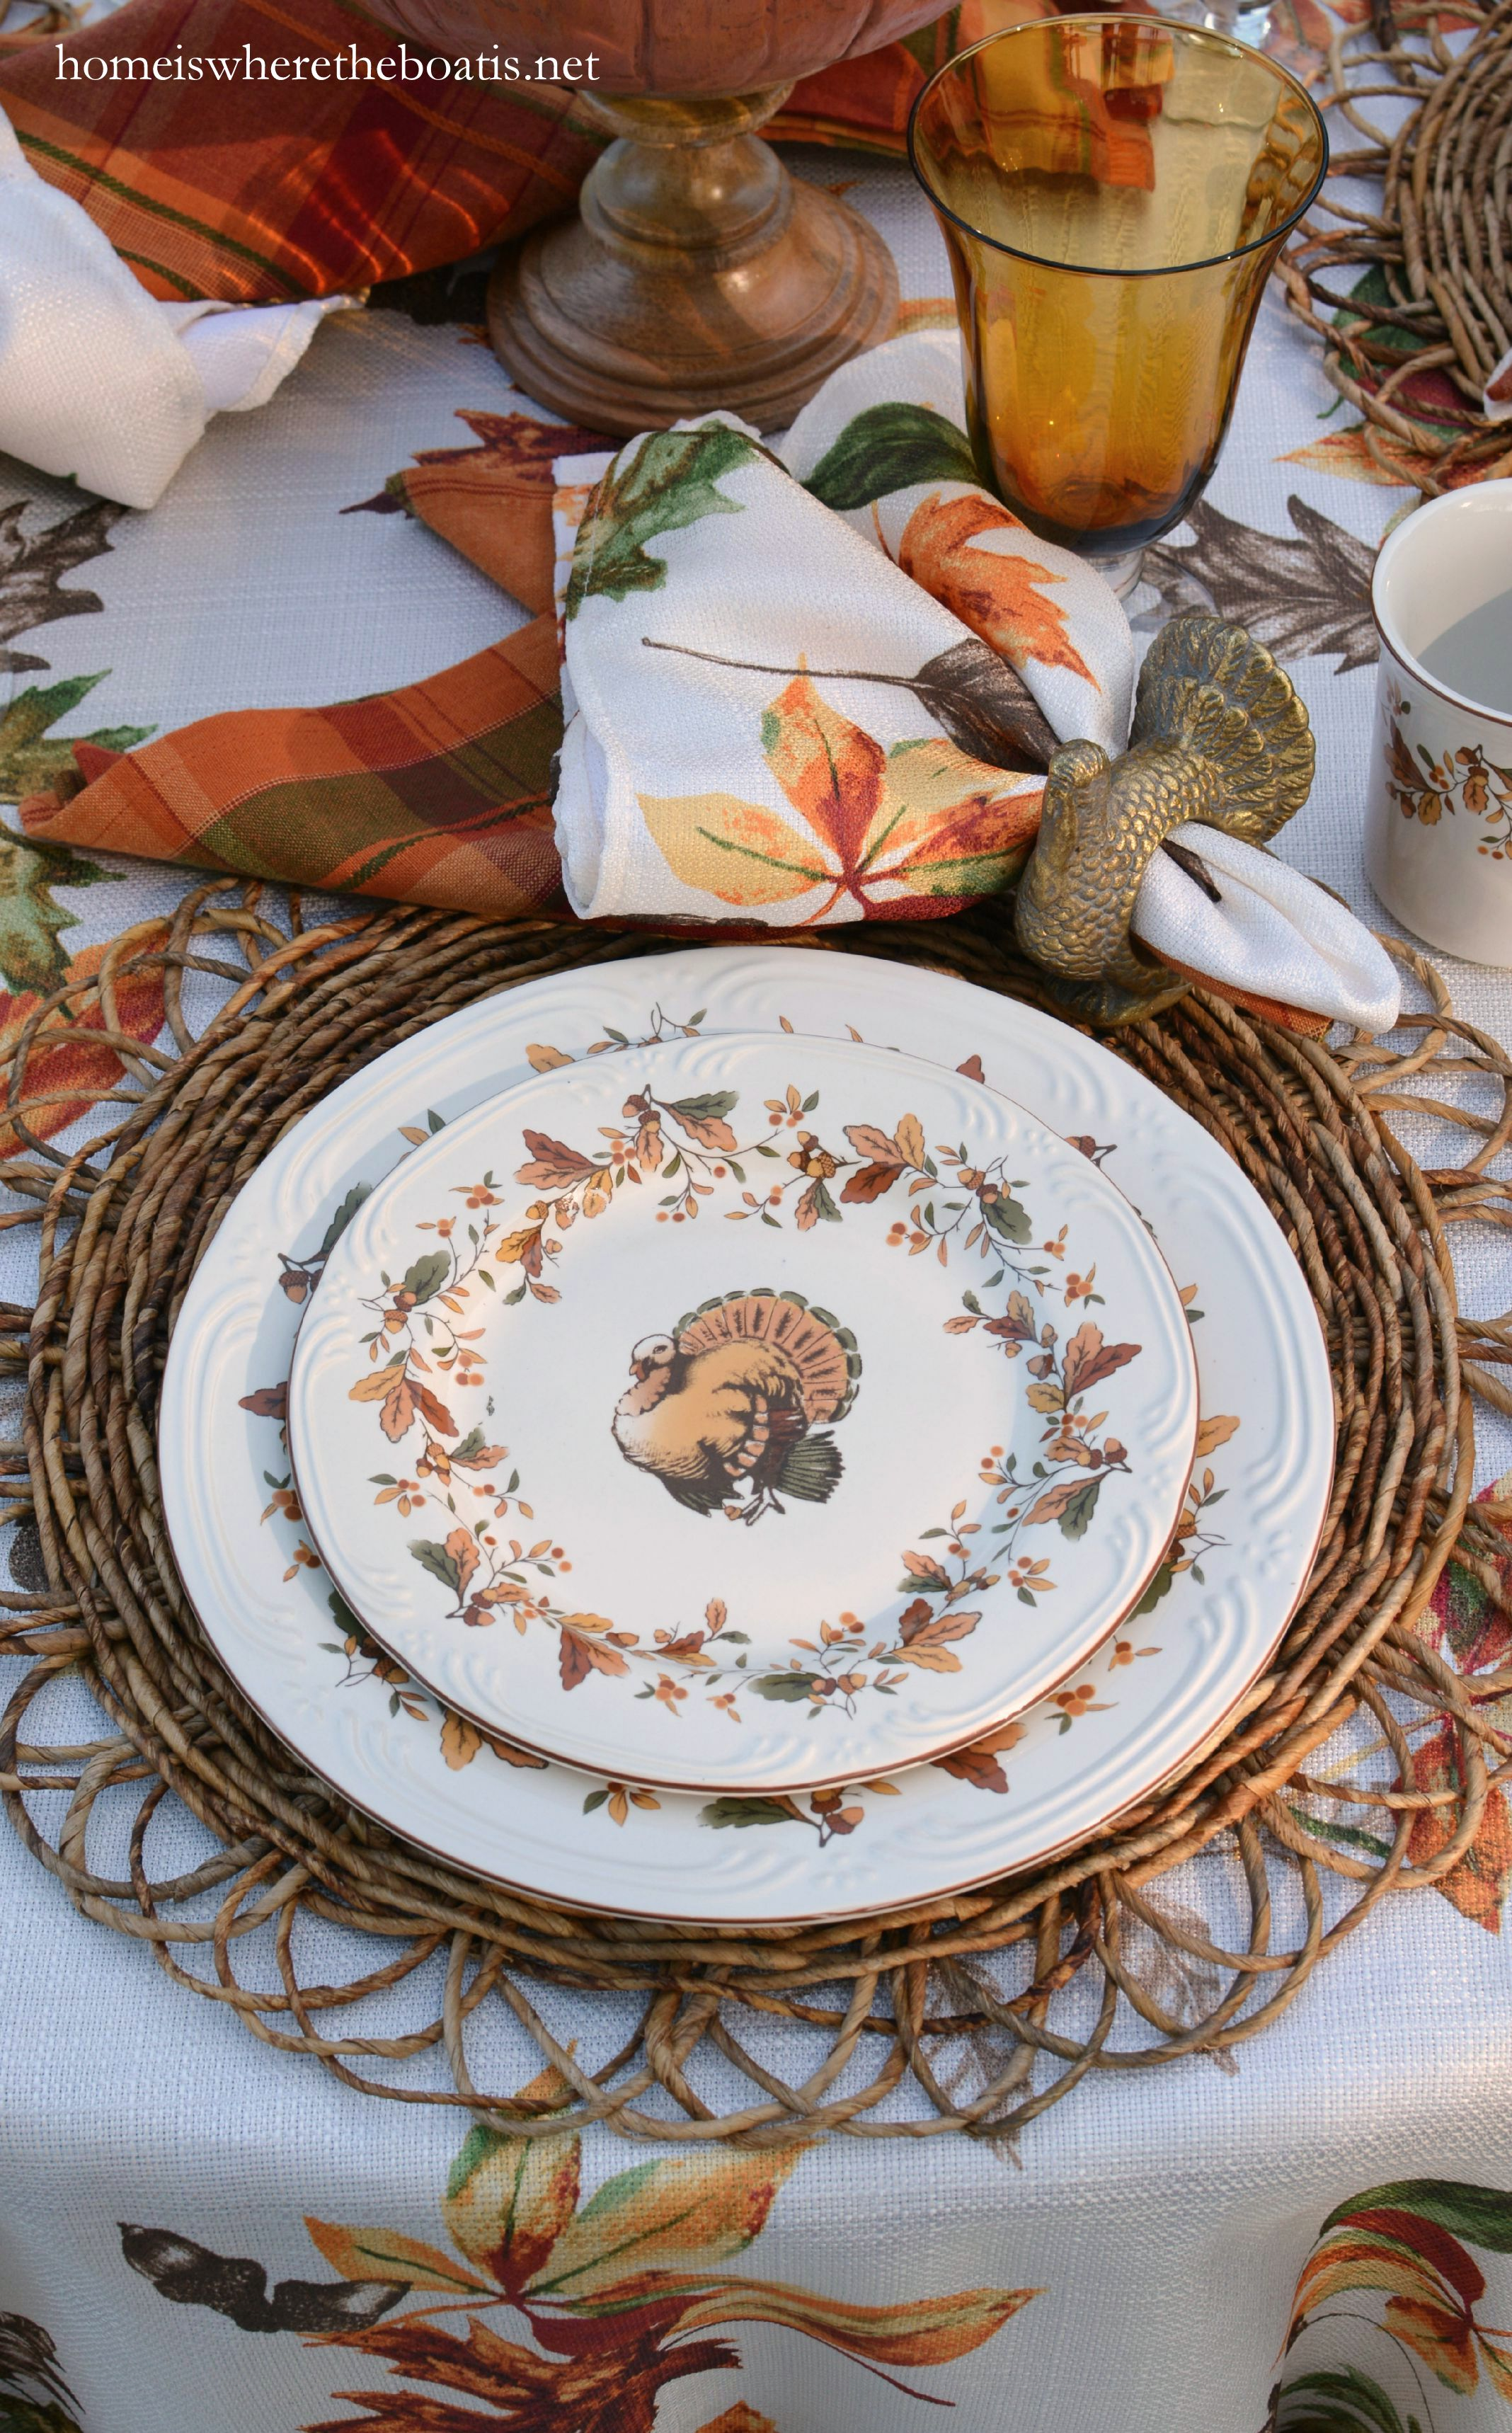 DSC_7279-001 & Scattered Leaves Turkeys and Pfaltzgraff Autumn Berry Dinnerware ...